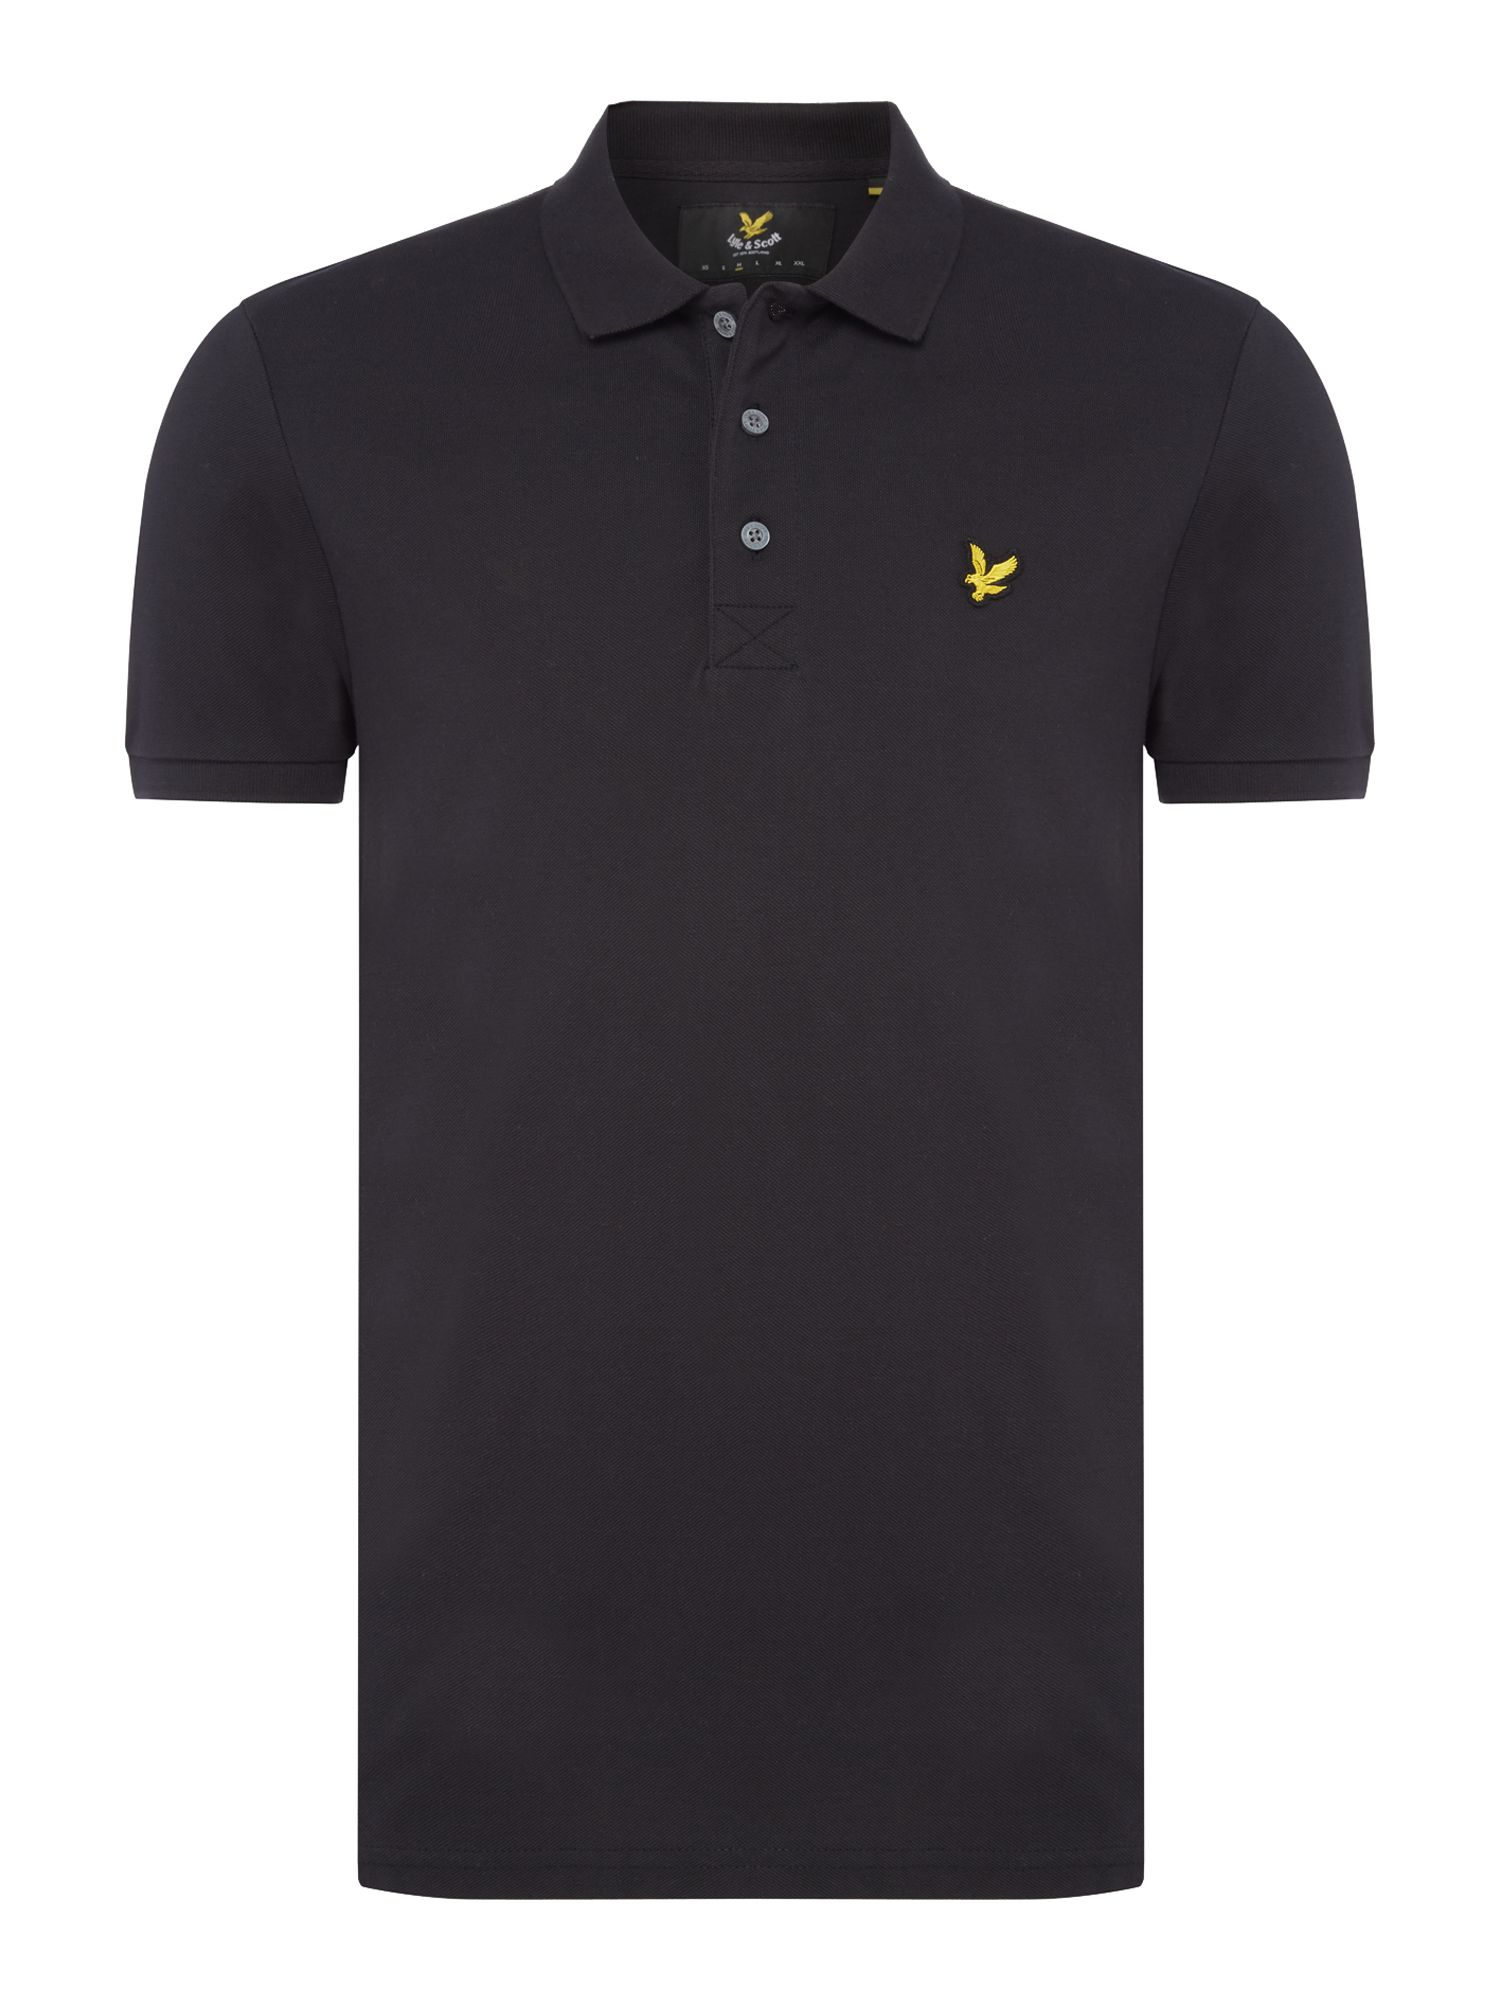 Men's Lyle and Scott Short Sleeve Plain Pique Polo, Black